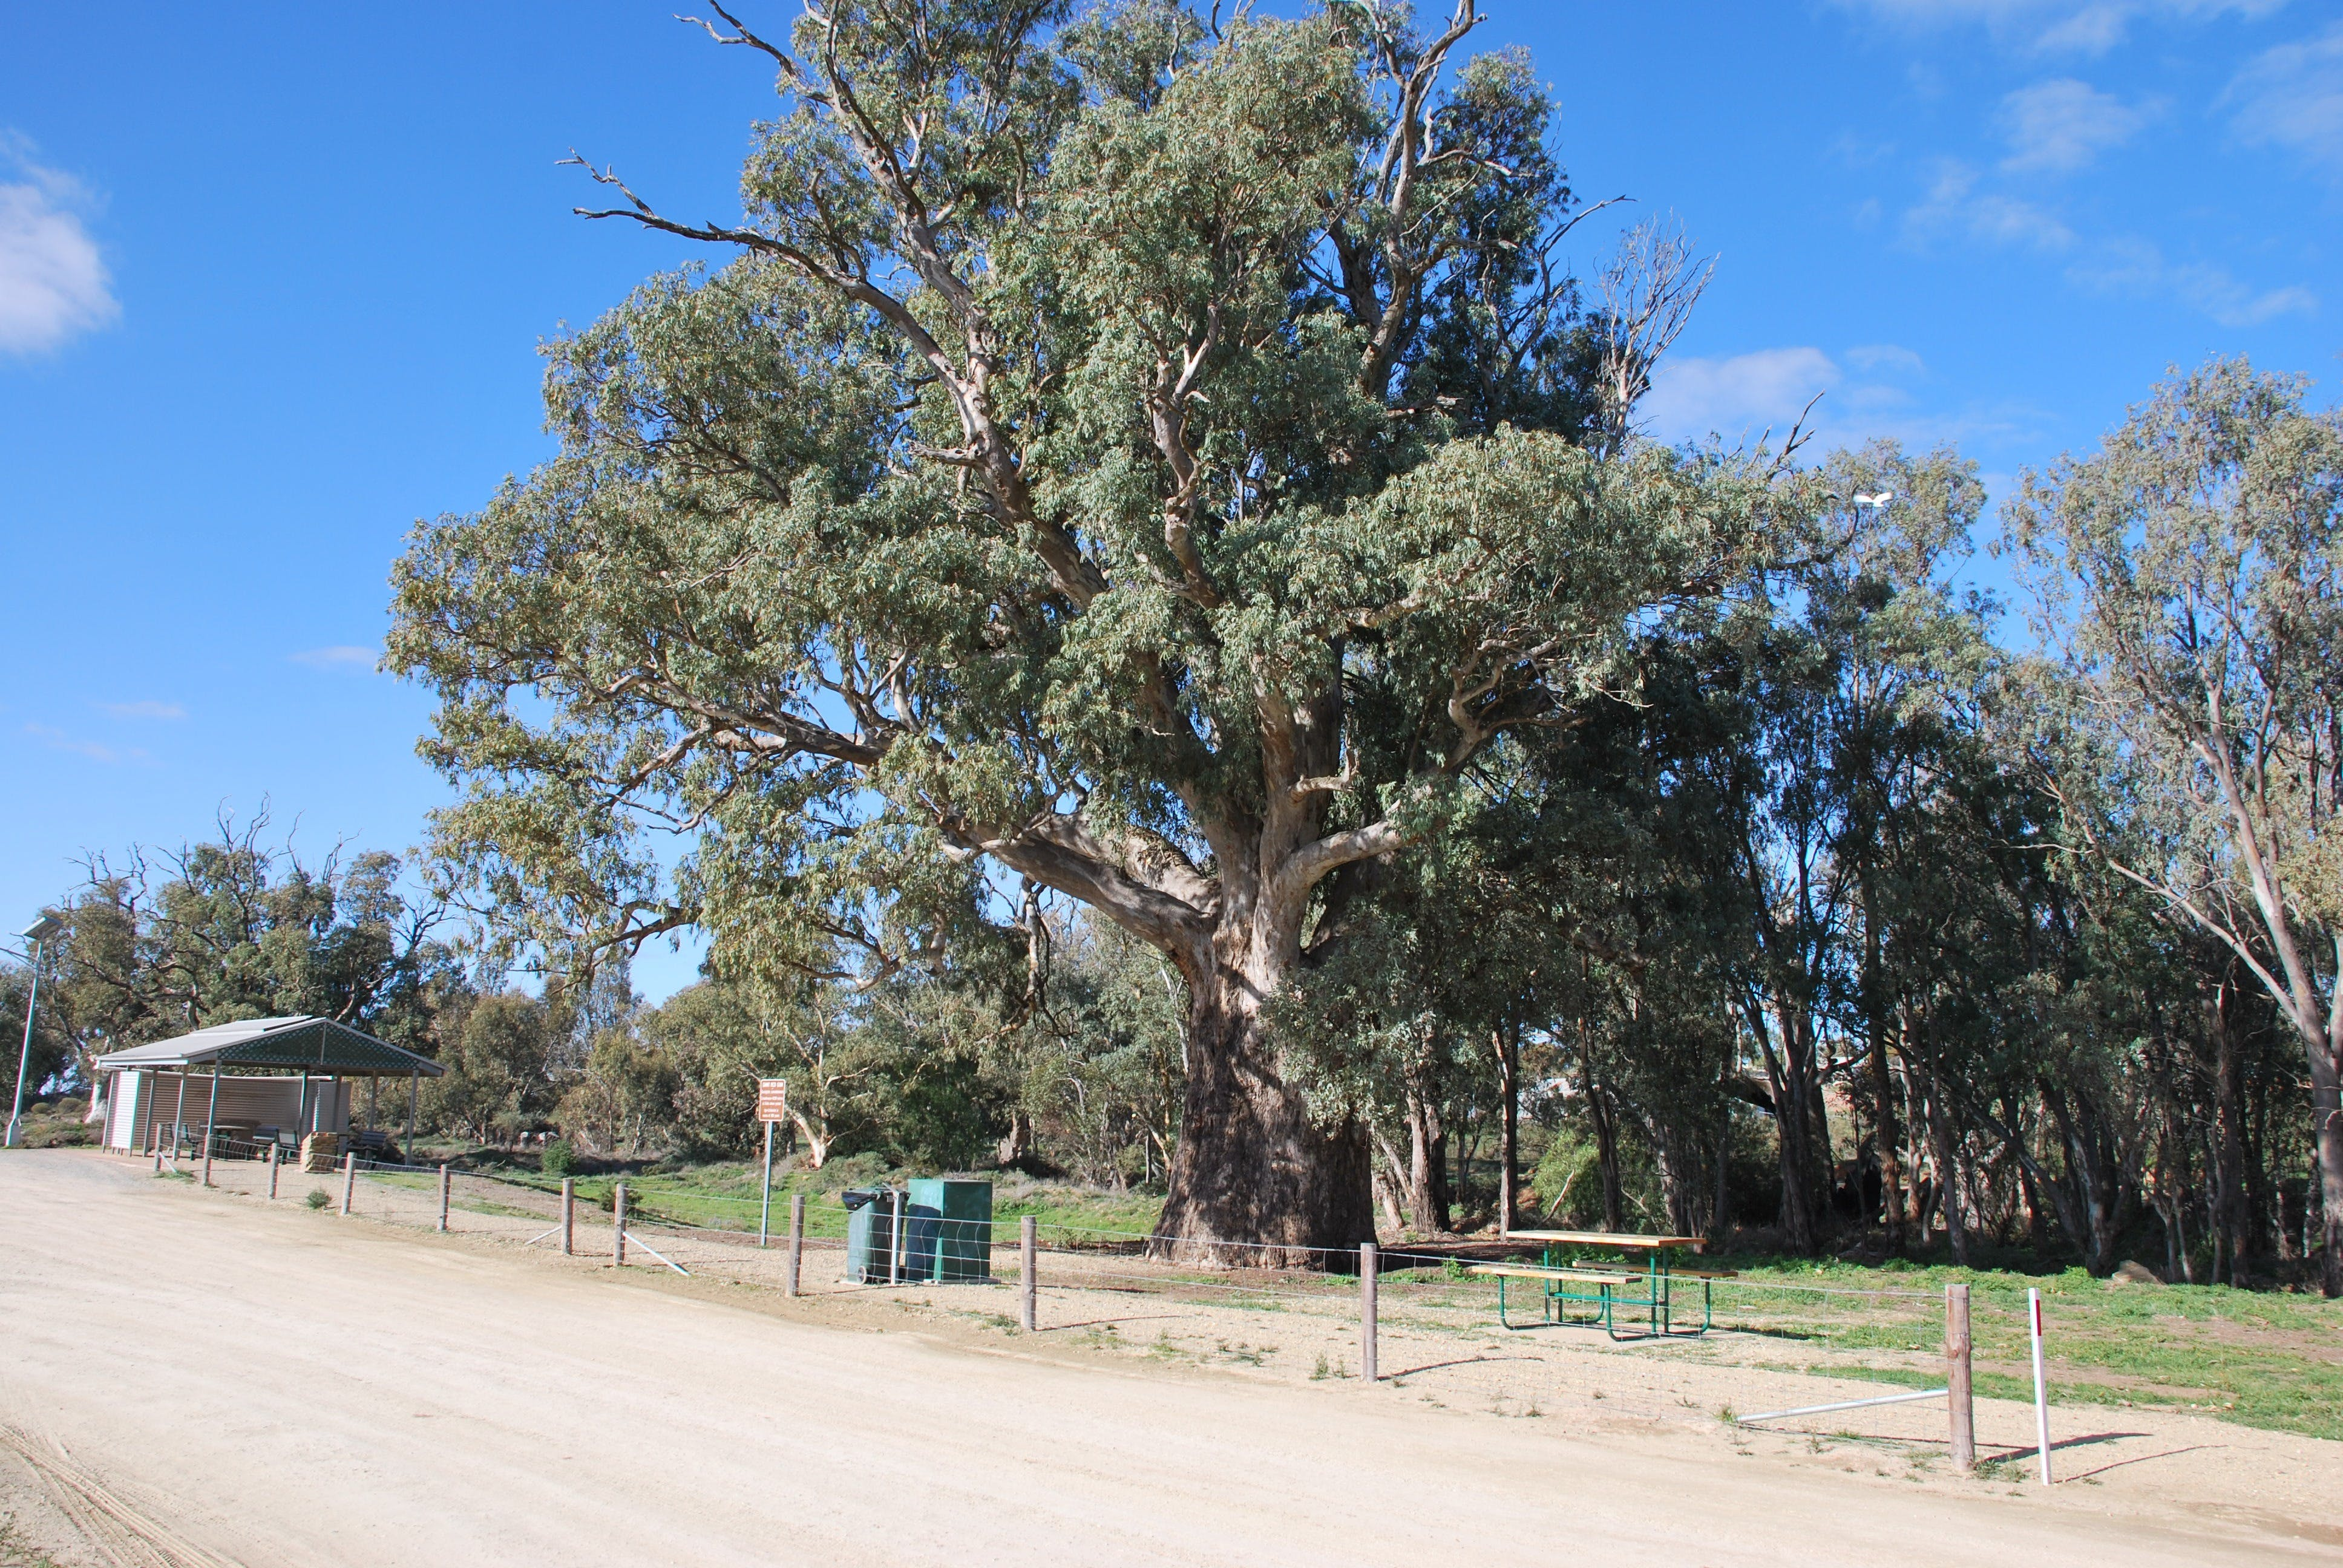 Giant Gum Tree